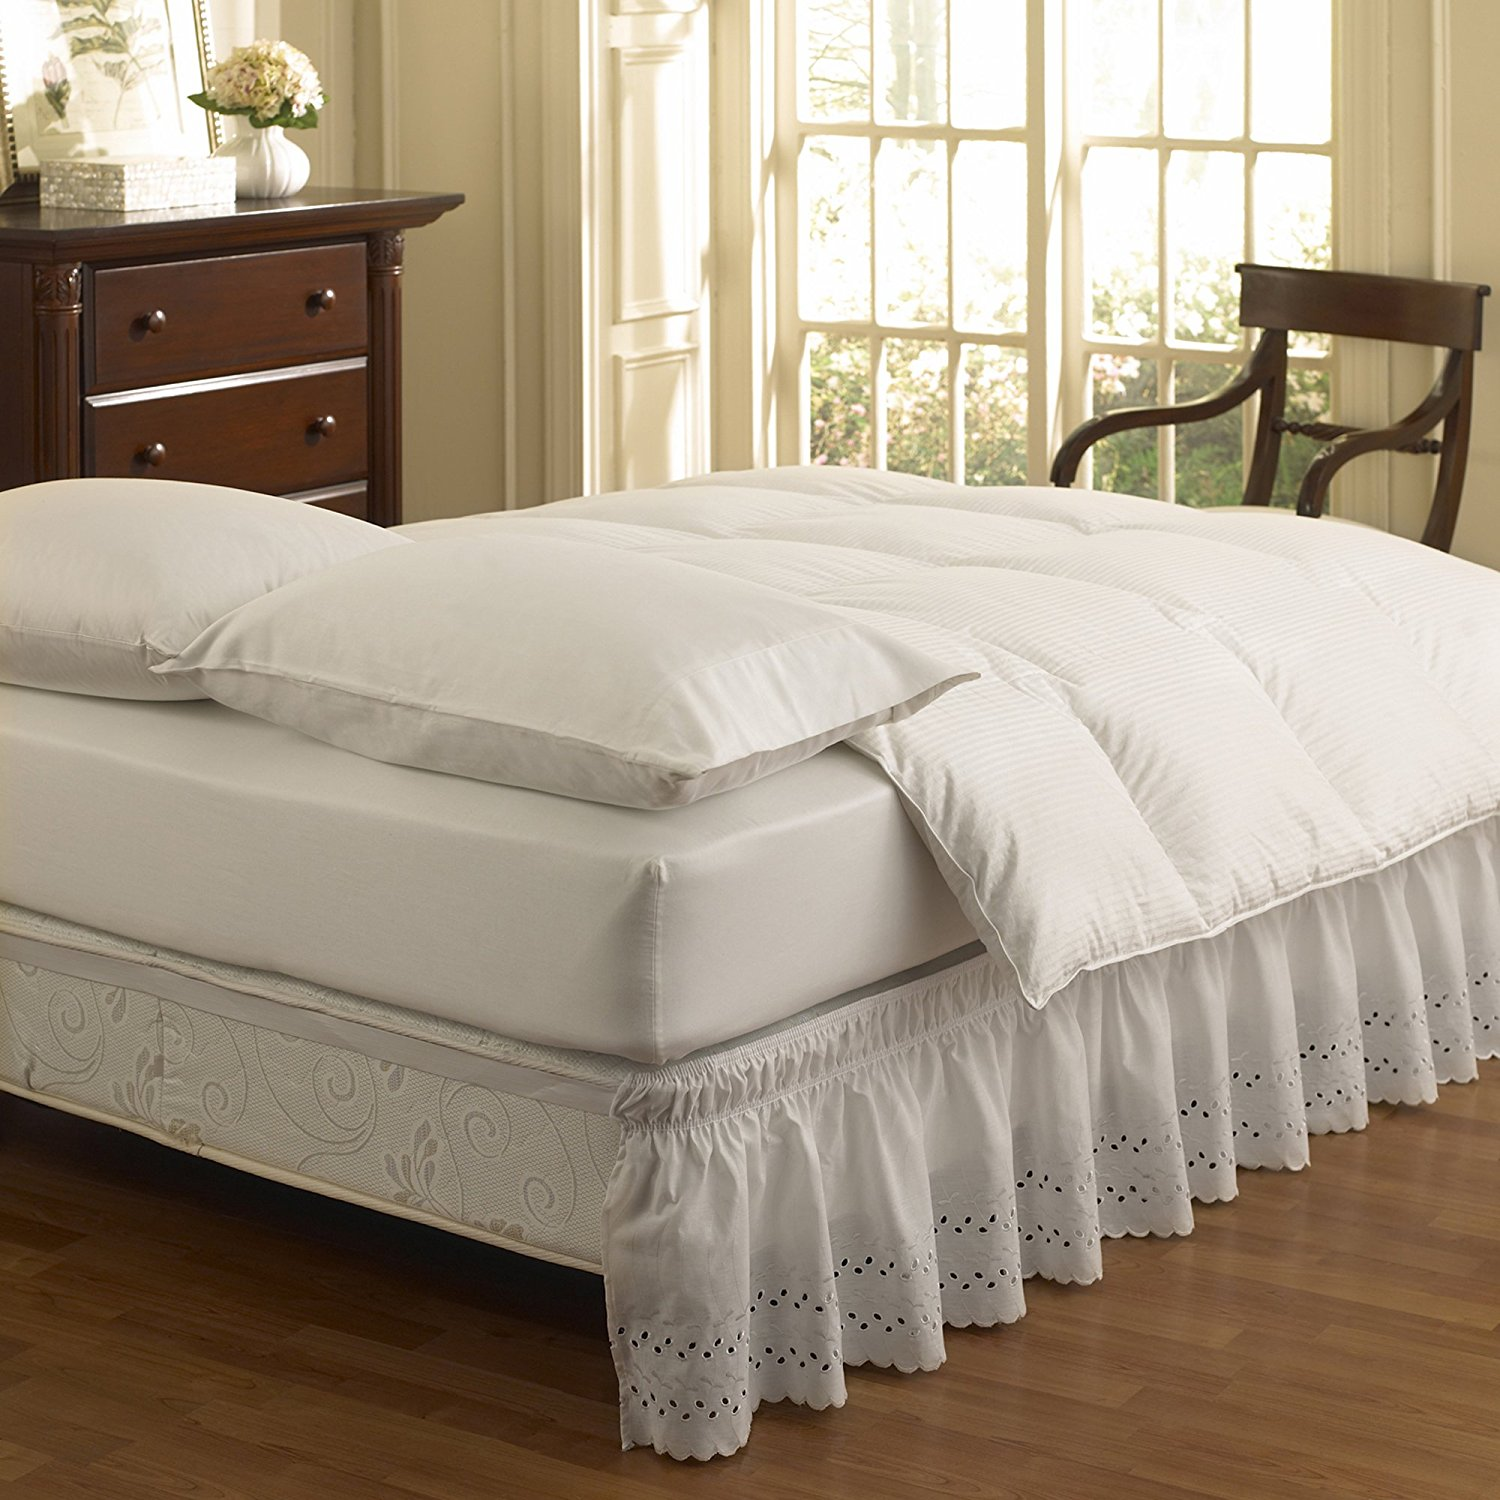 Macys Bed Skirt | Bedskirt King | Bed Skirts Queen